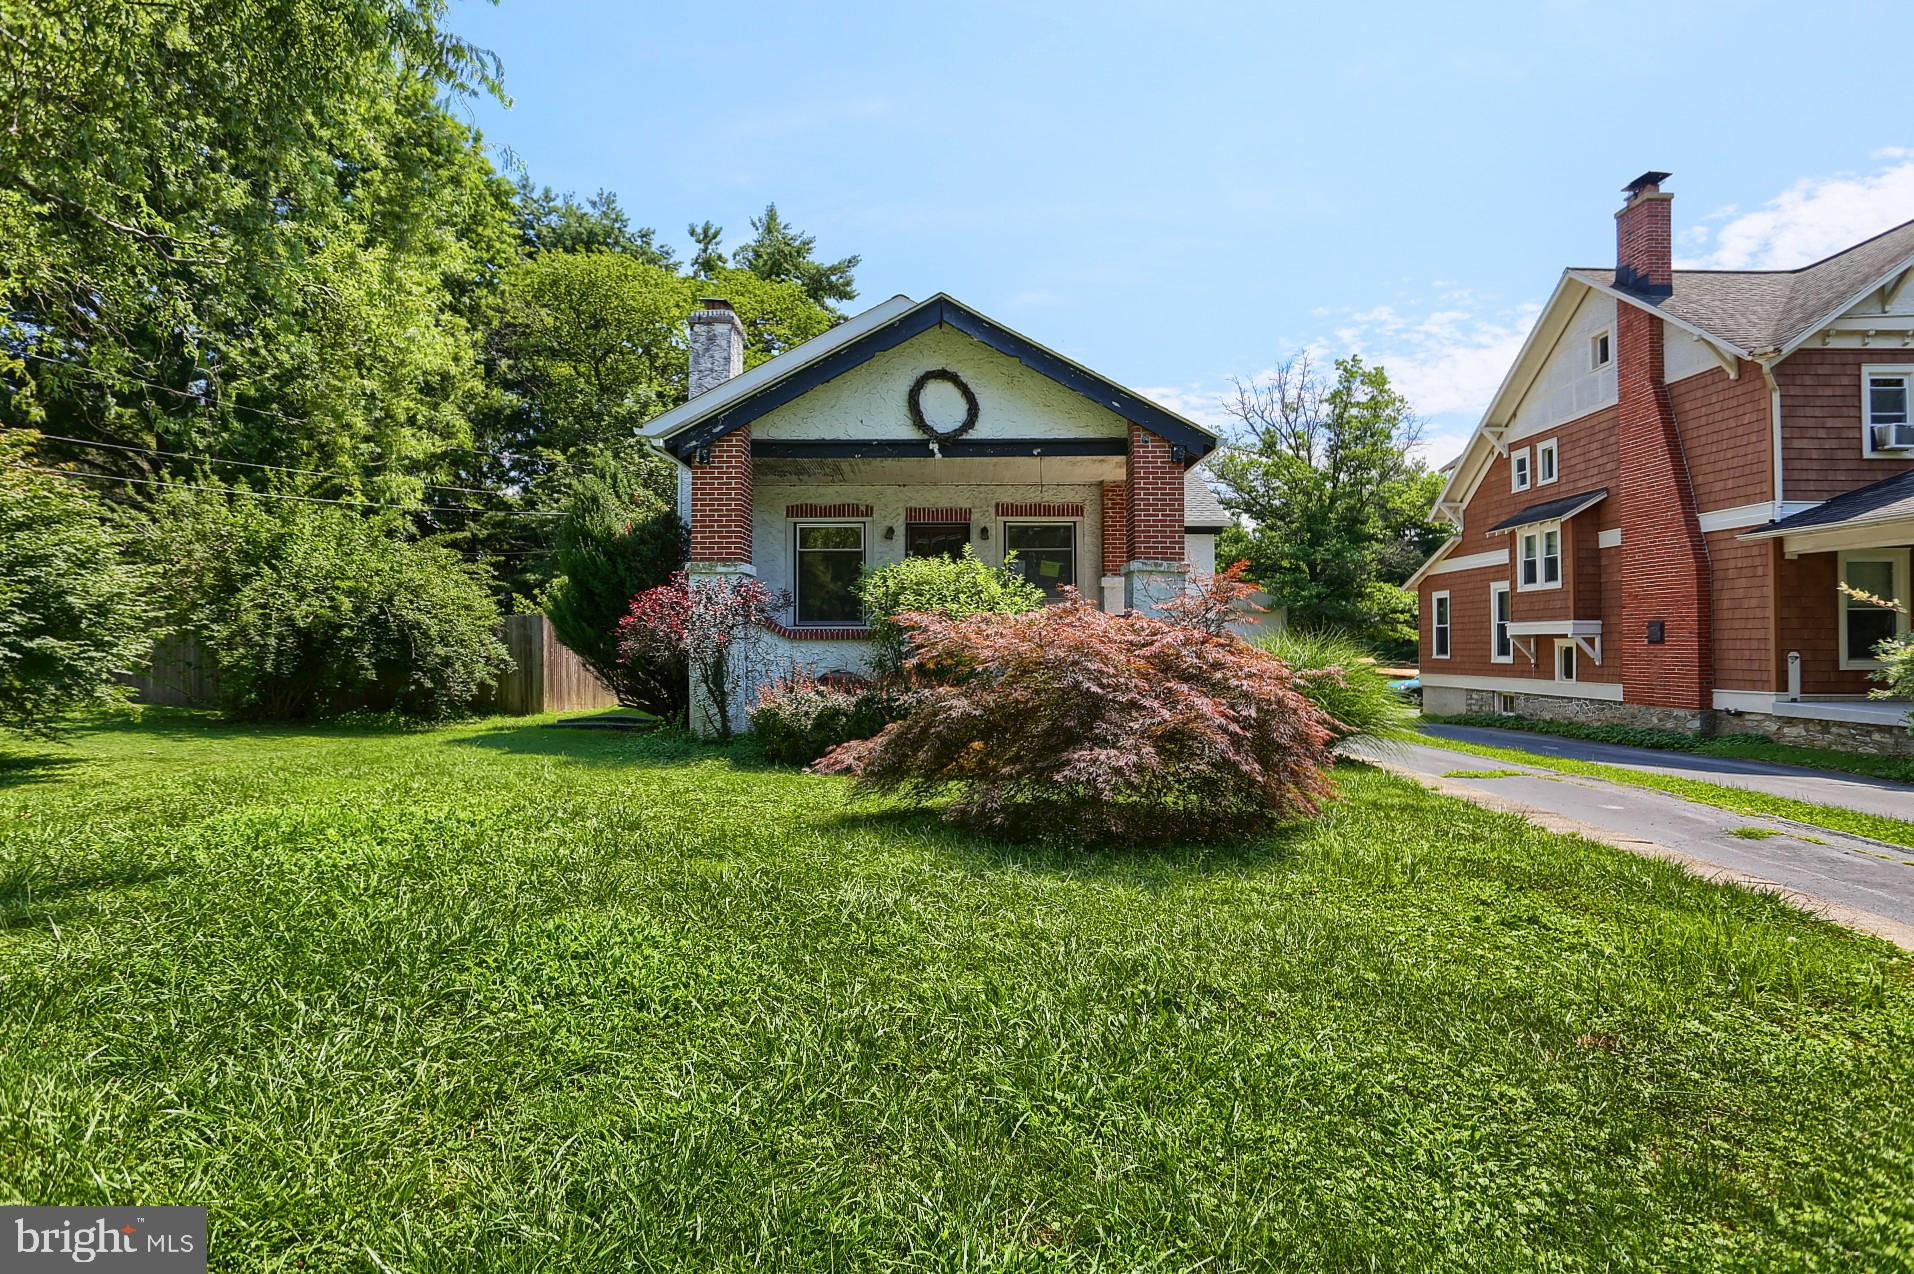 Residential for sale in DOWNINGTOWN, Pennsylvania, PACT485266